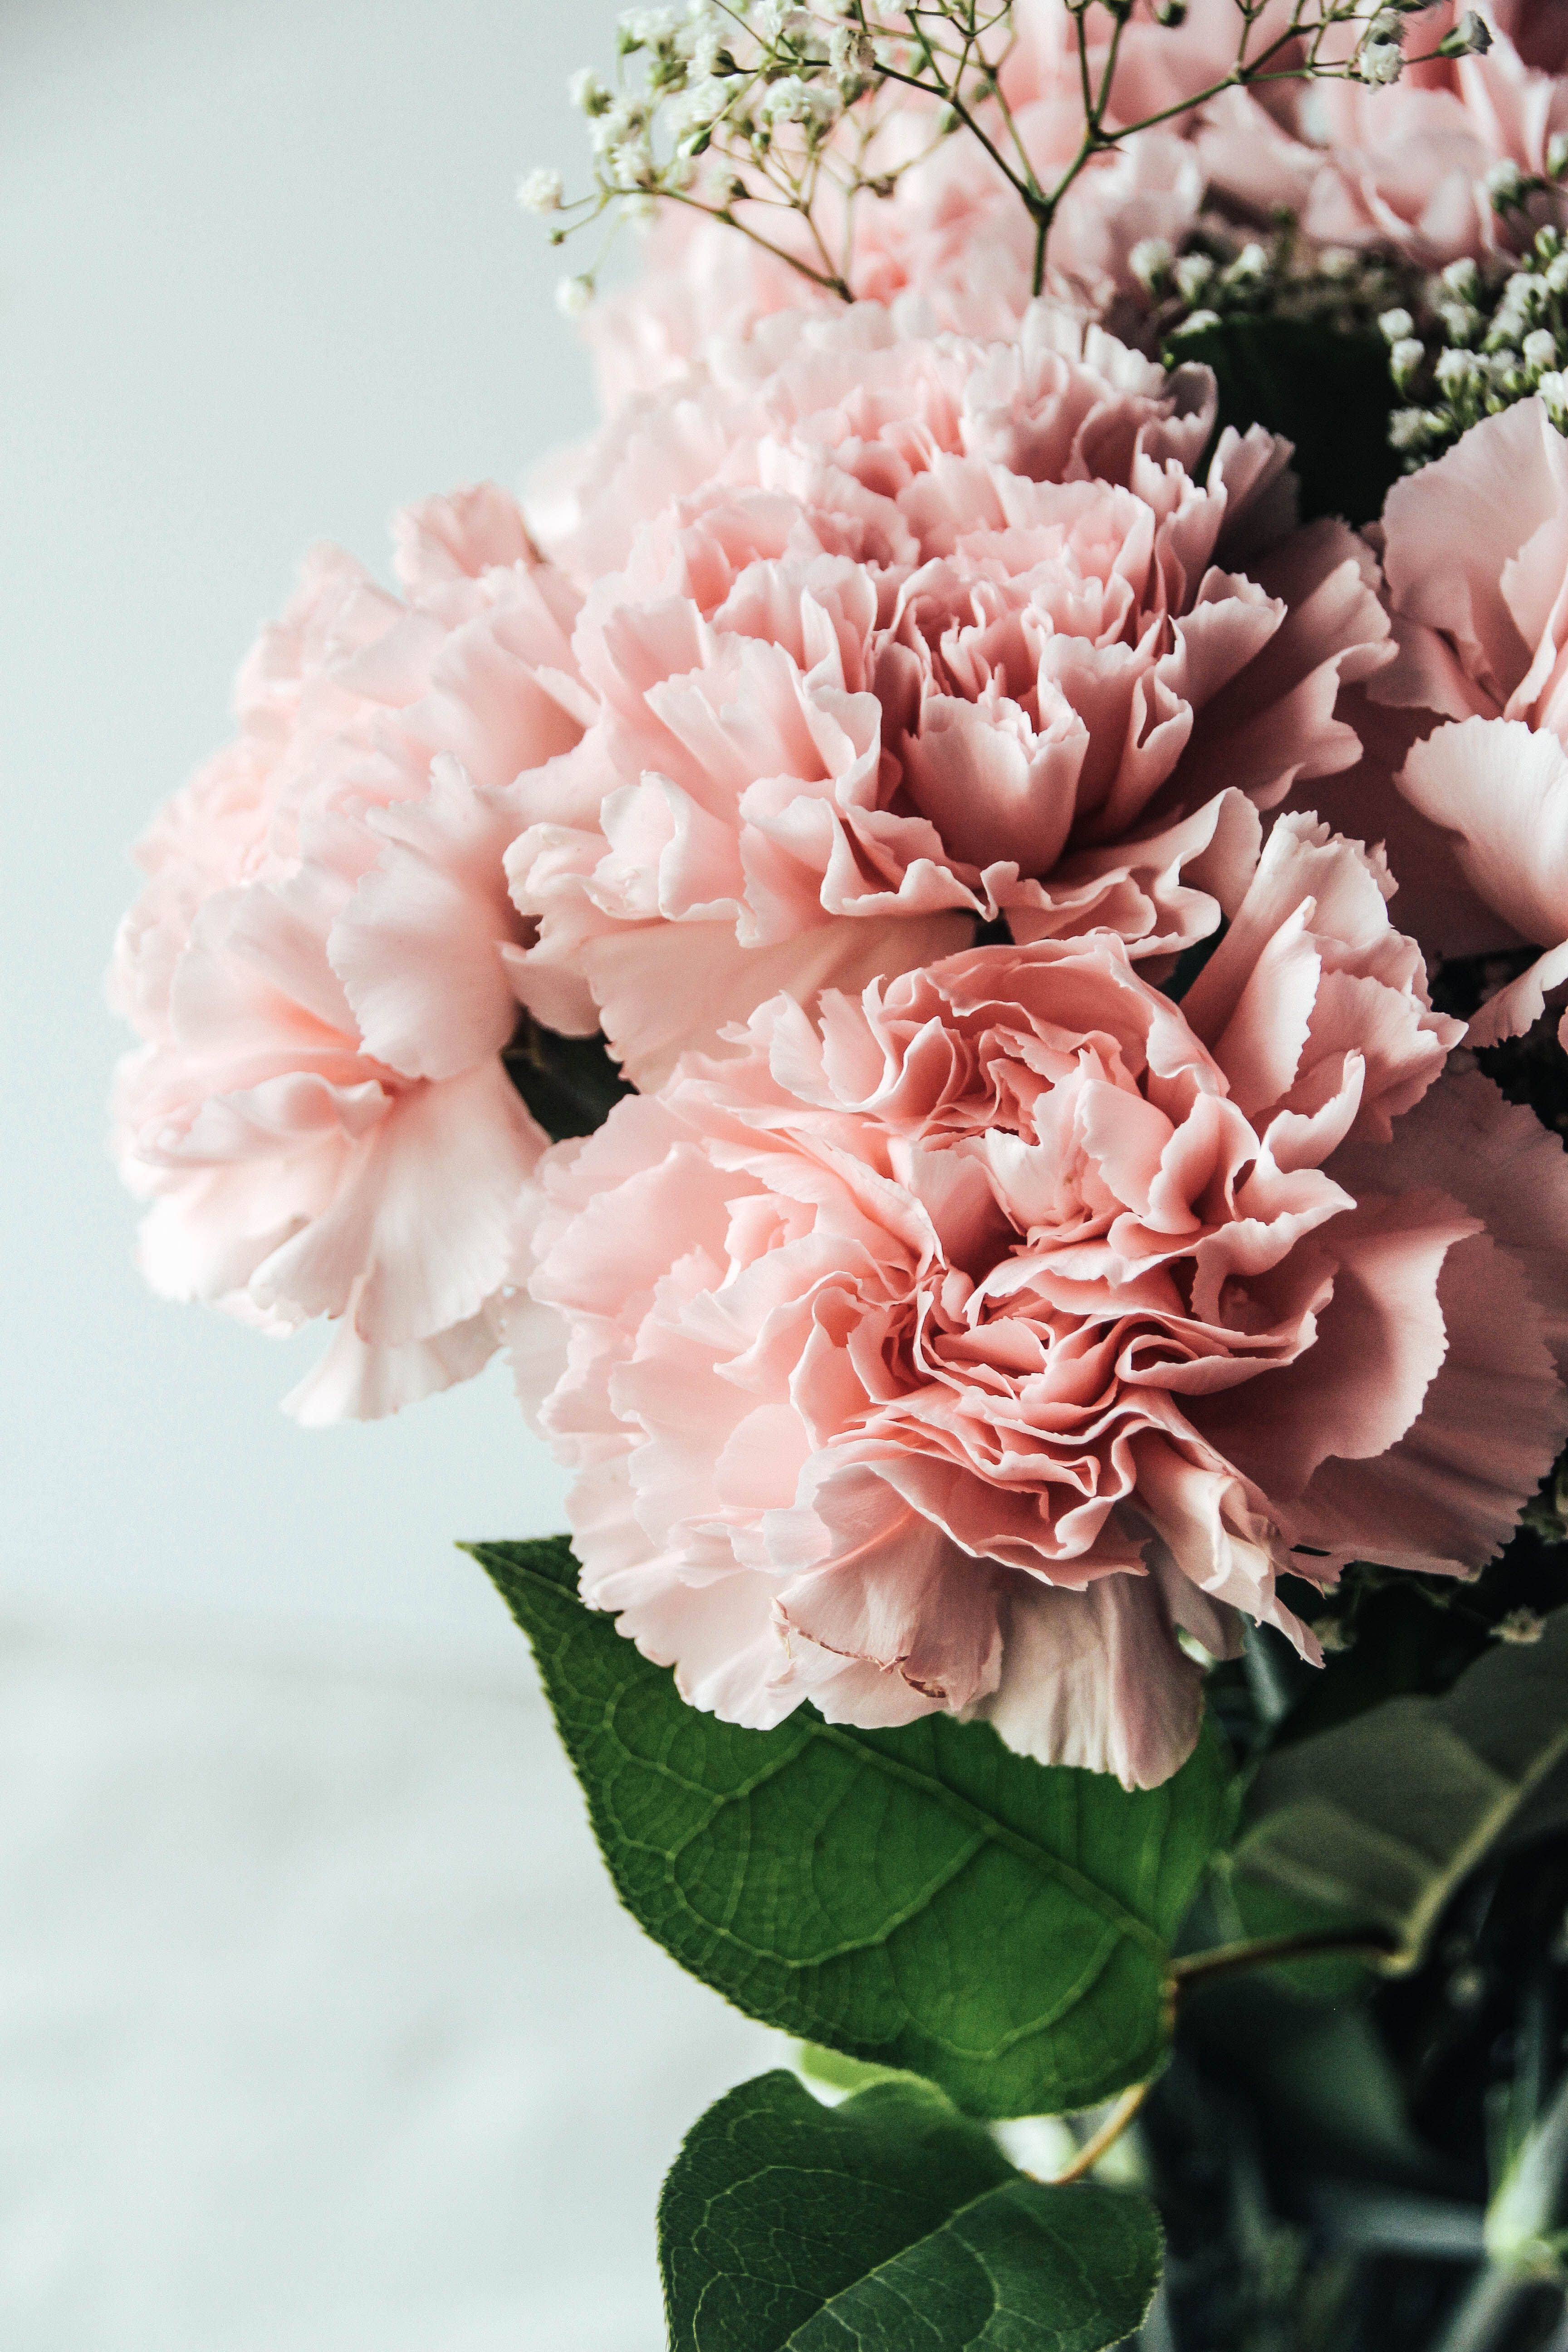 Lace & Lilacs: A Paris-Based Lifestyle Blog by Abby Ingwersen » lovely little things: photographs. thoughts. links.